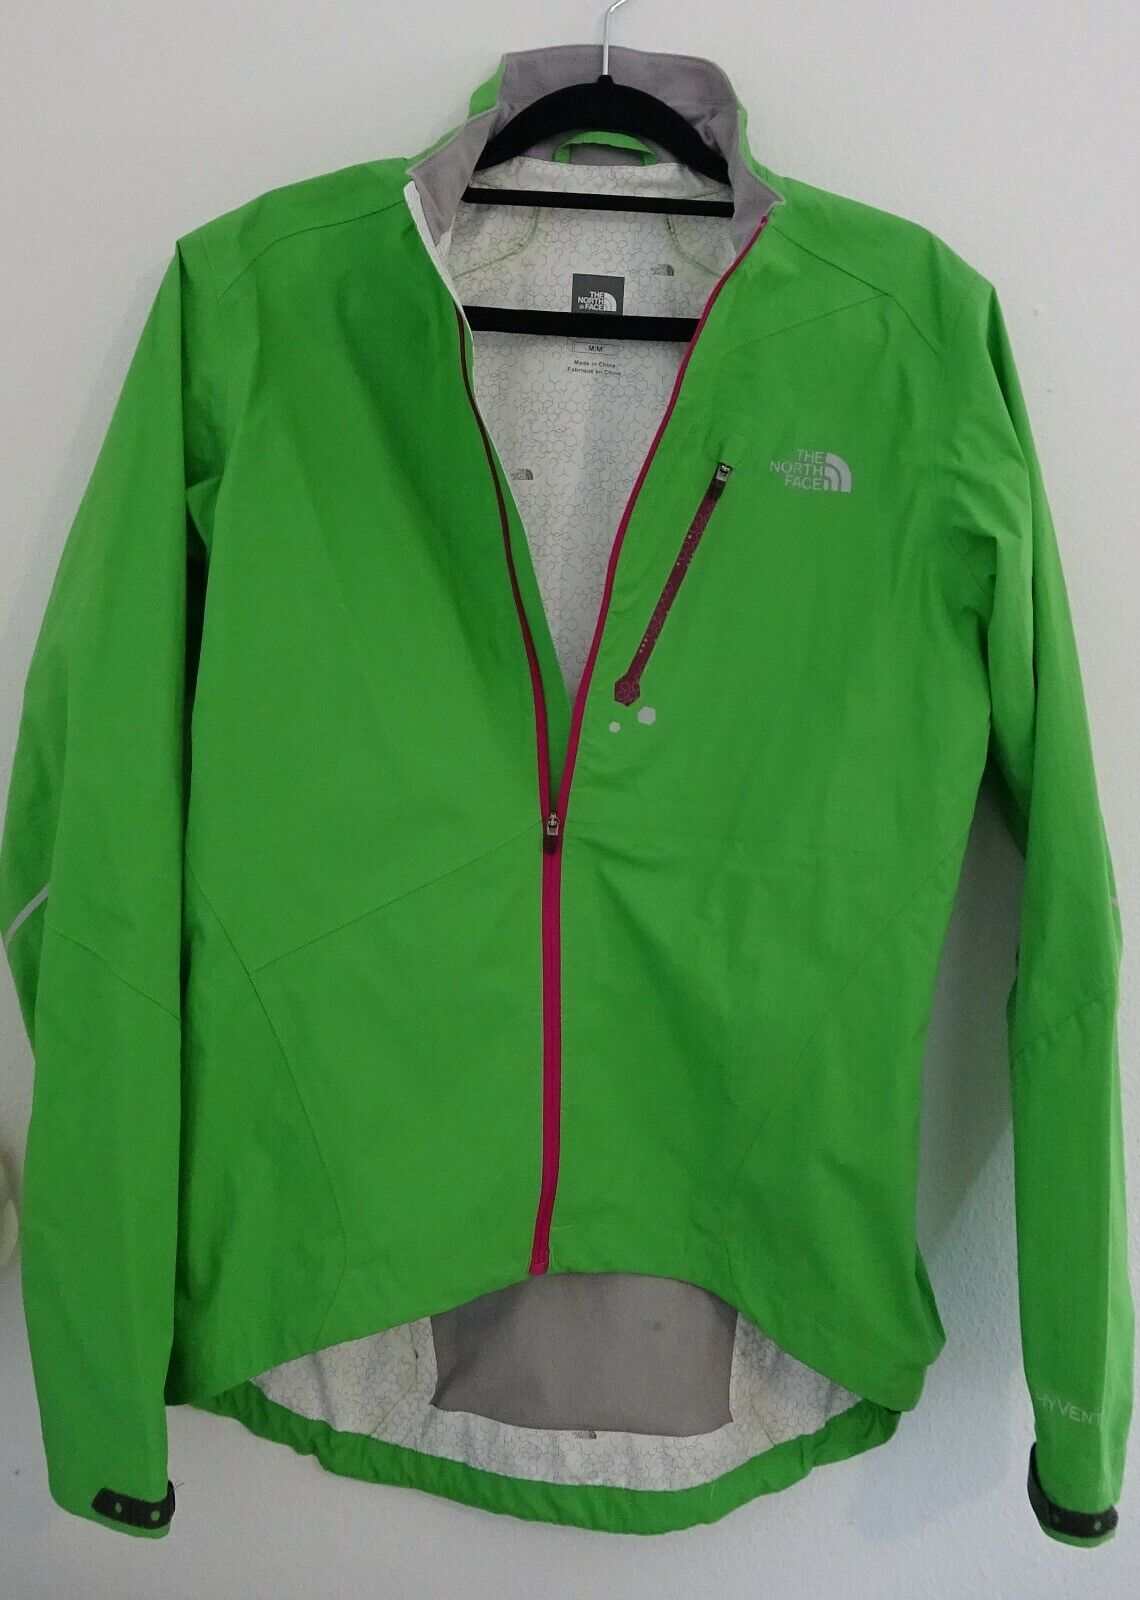 The North Face Damen Regenjacke Hyvent Gr. M NW